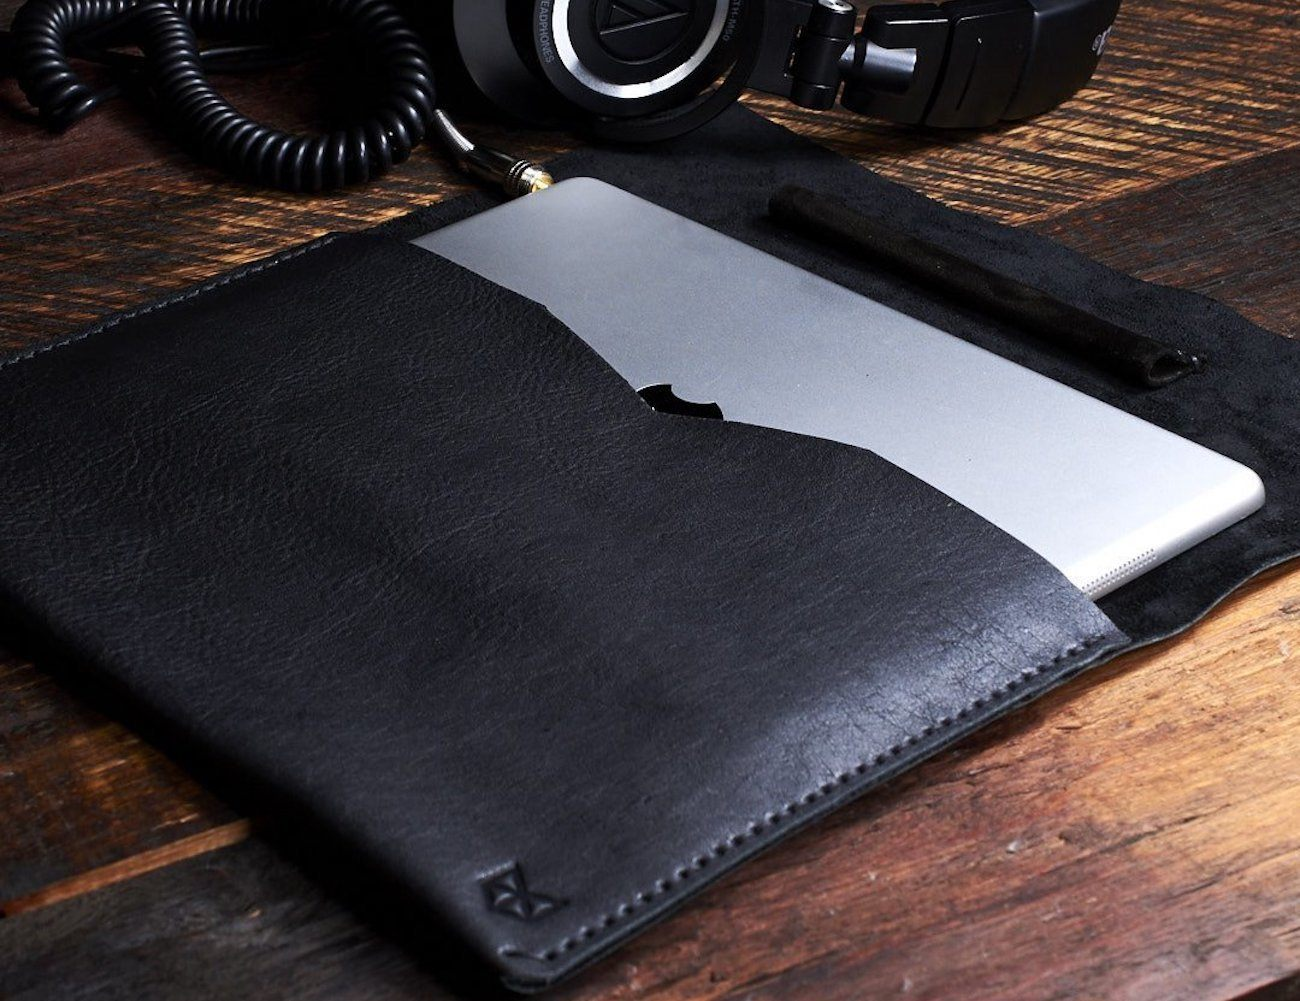 Leather+IPad+Pro+Sleeve+By+Capra+Leather